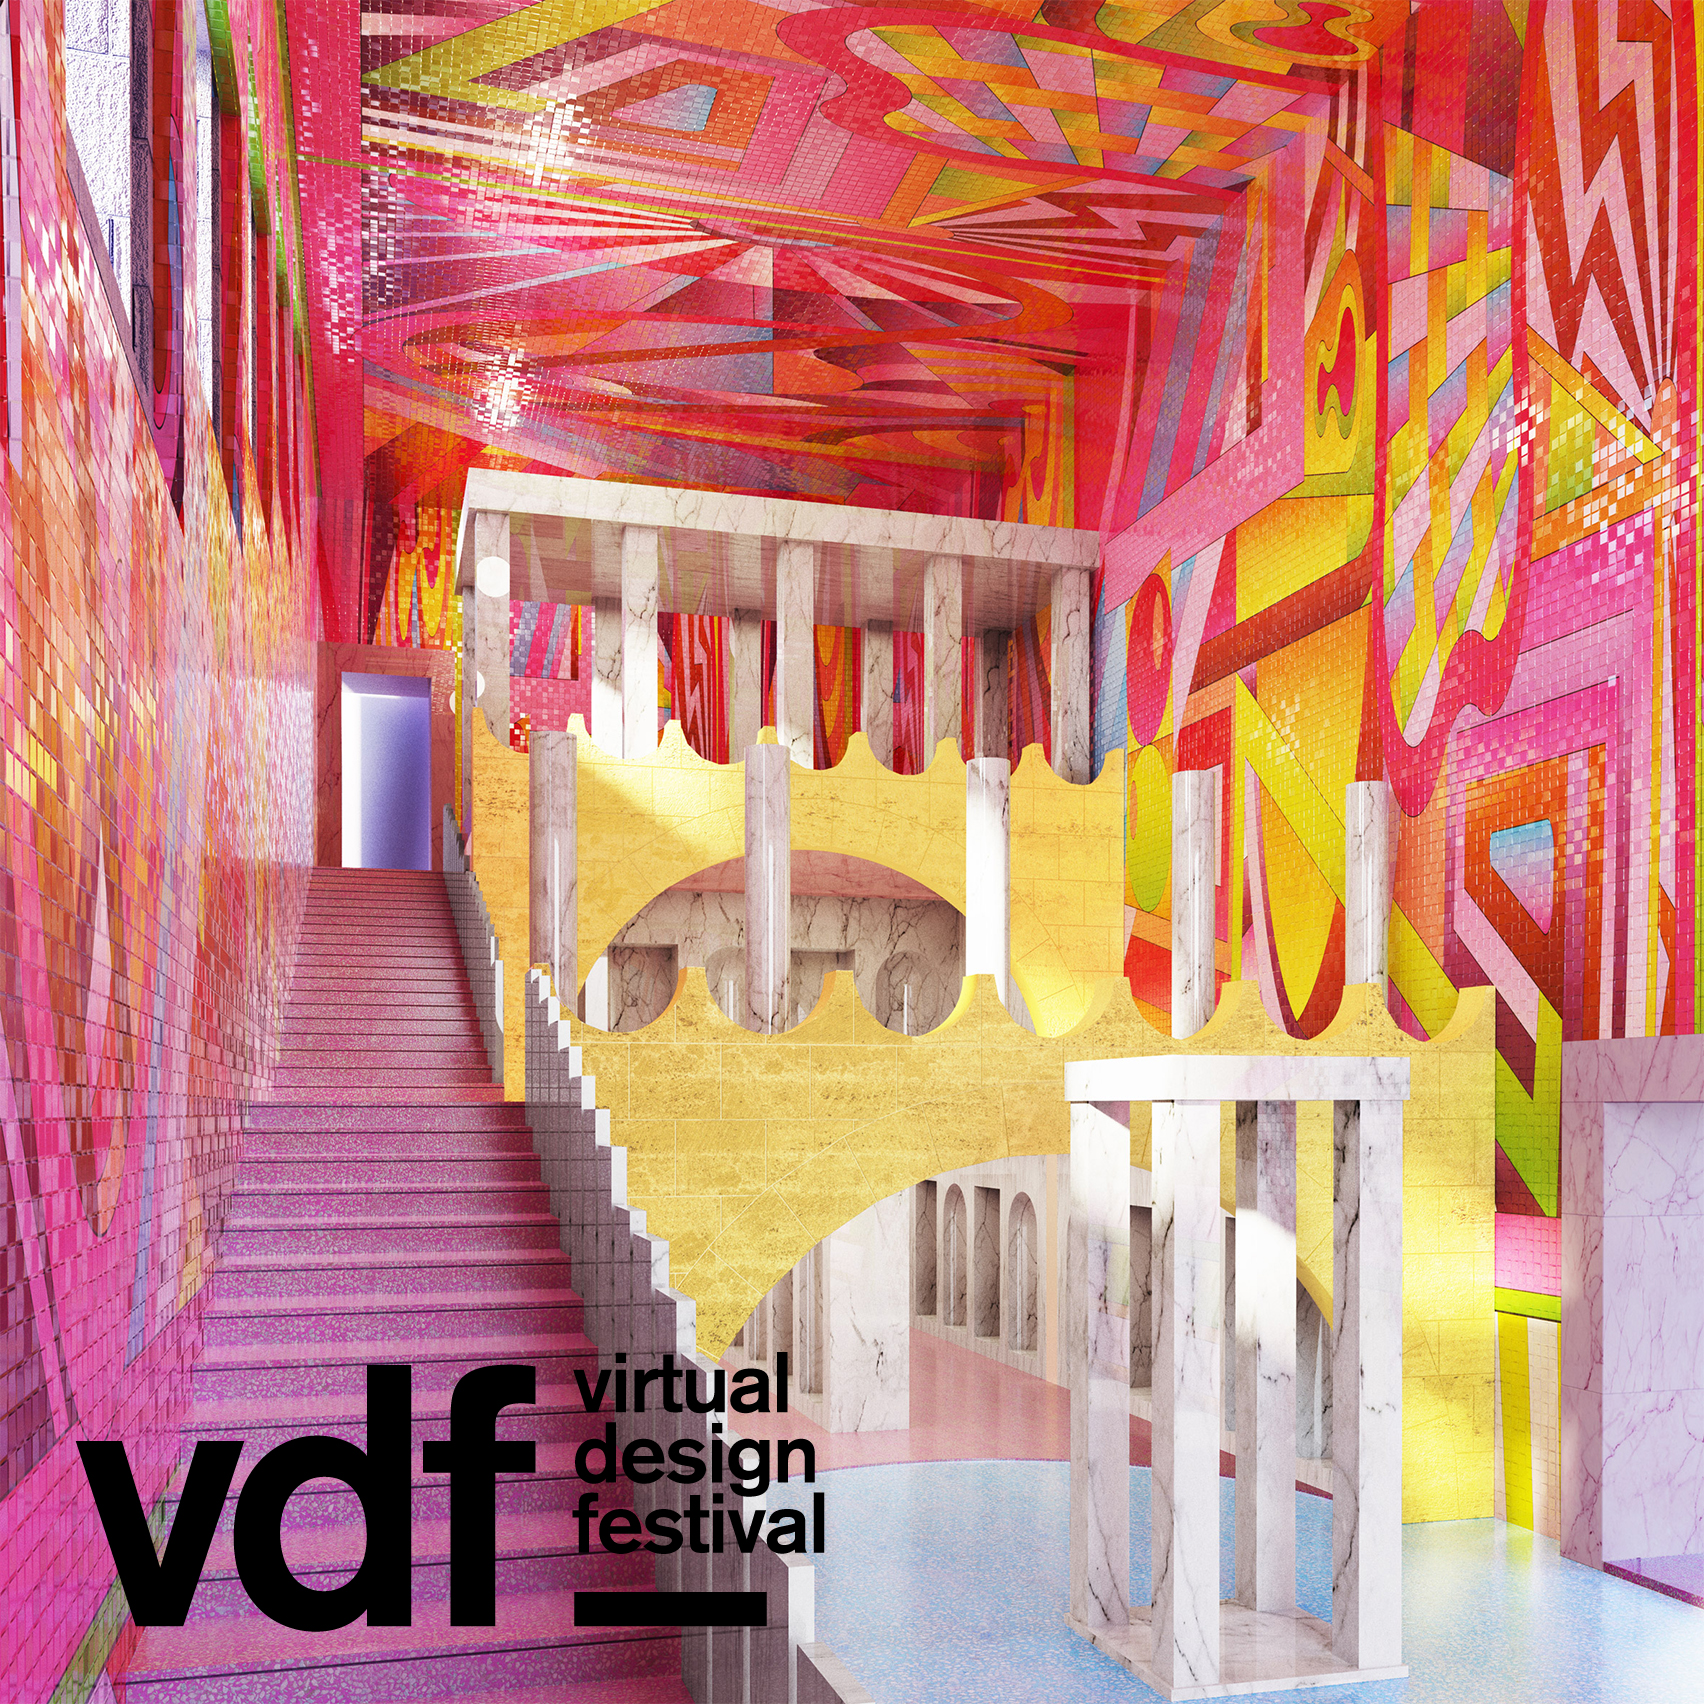 New London Fabulous at Virtual Design Festival